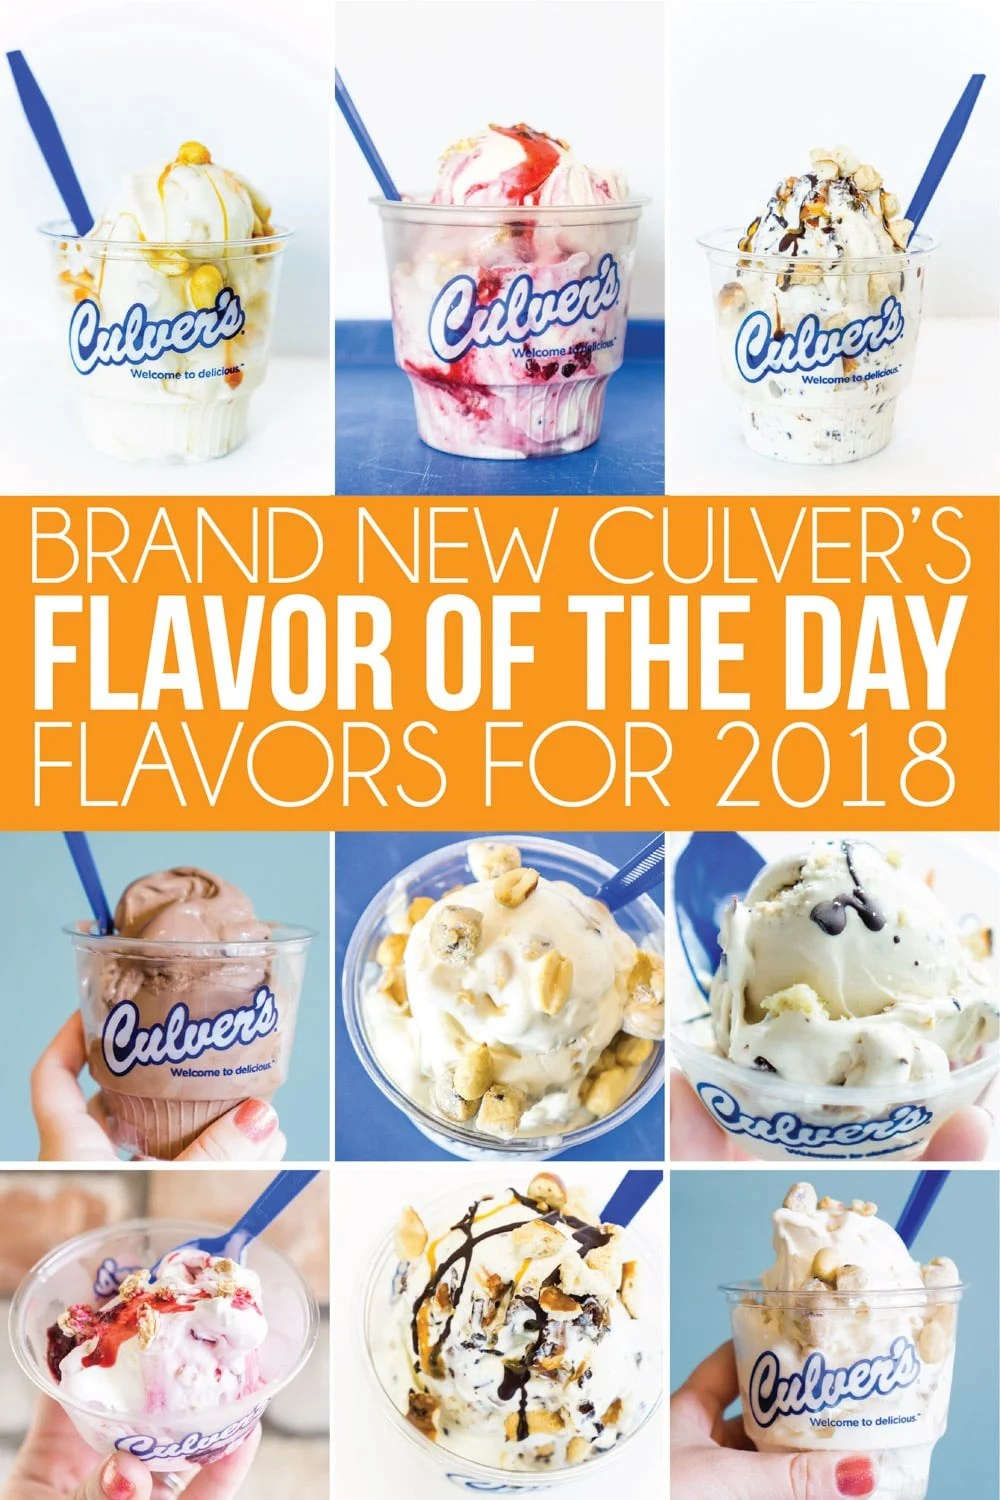 Culver's brand new Flavors of the Day release schedule for 2018